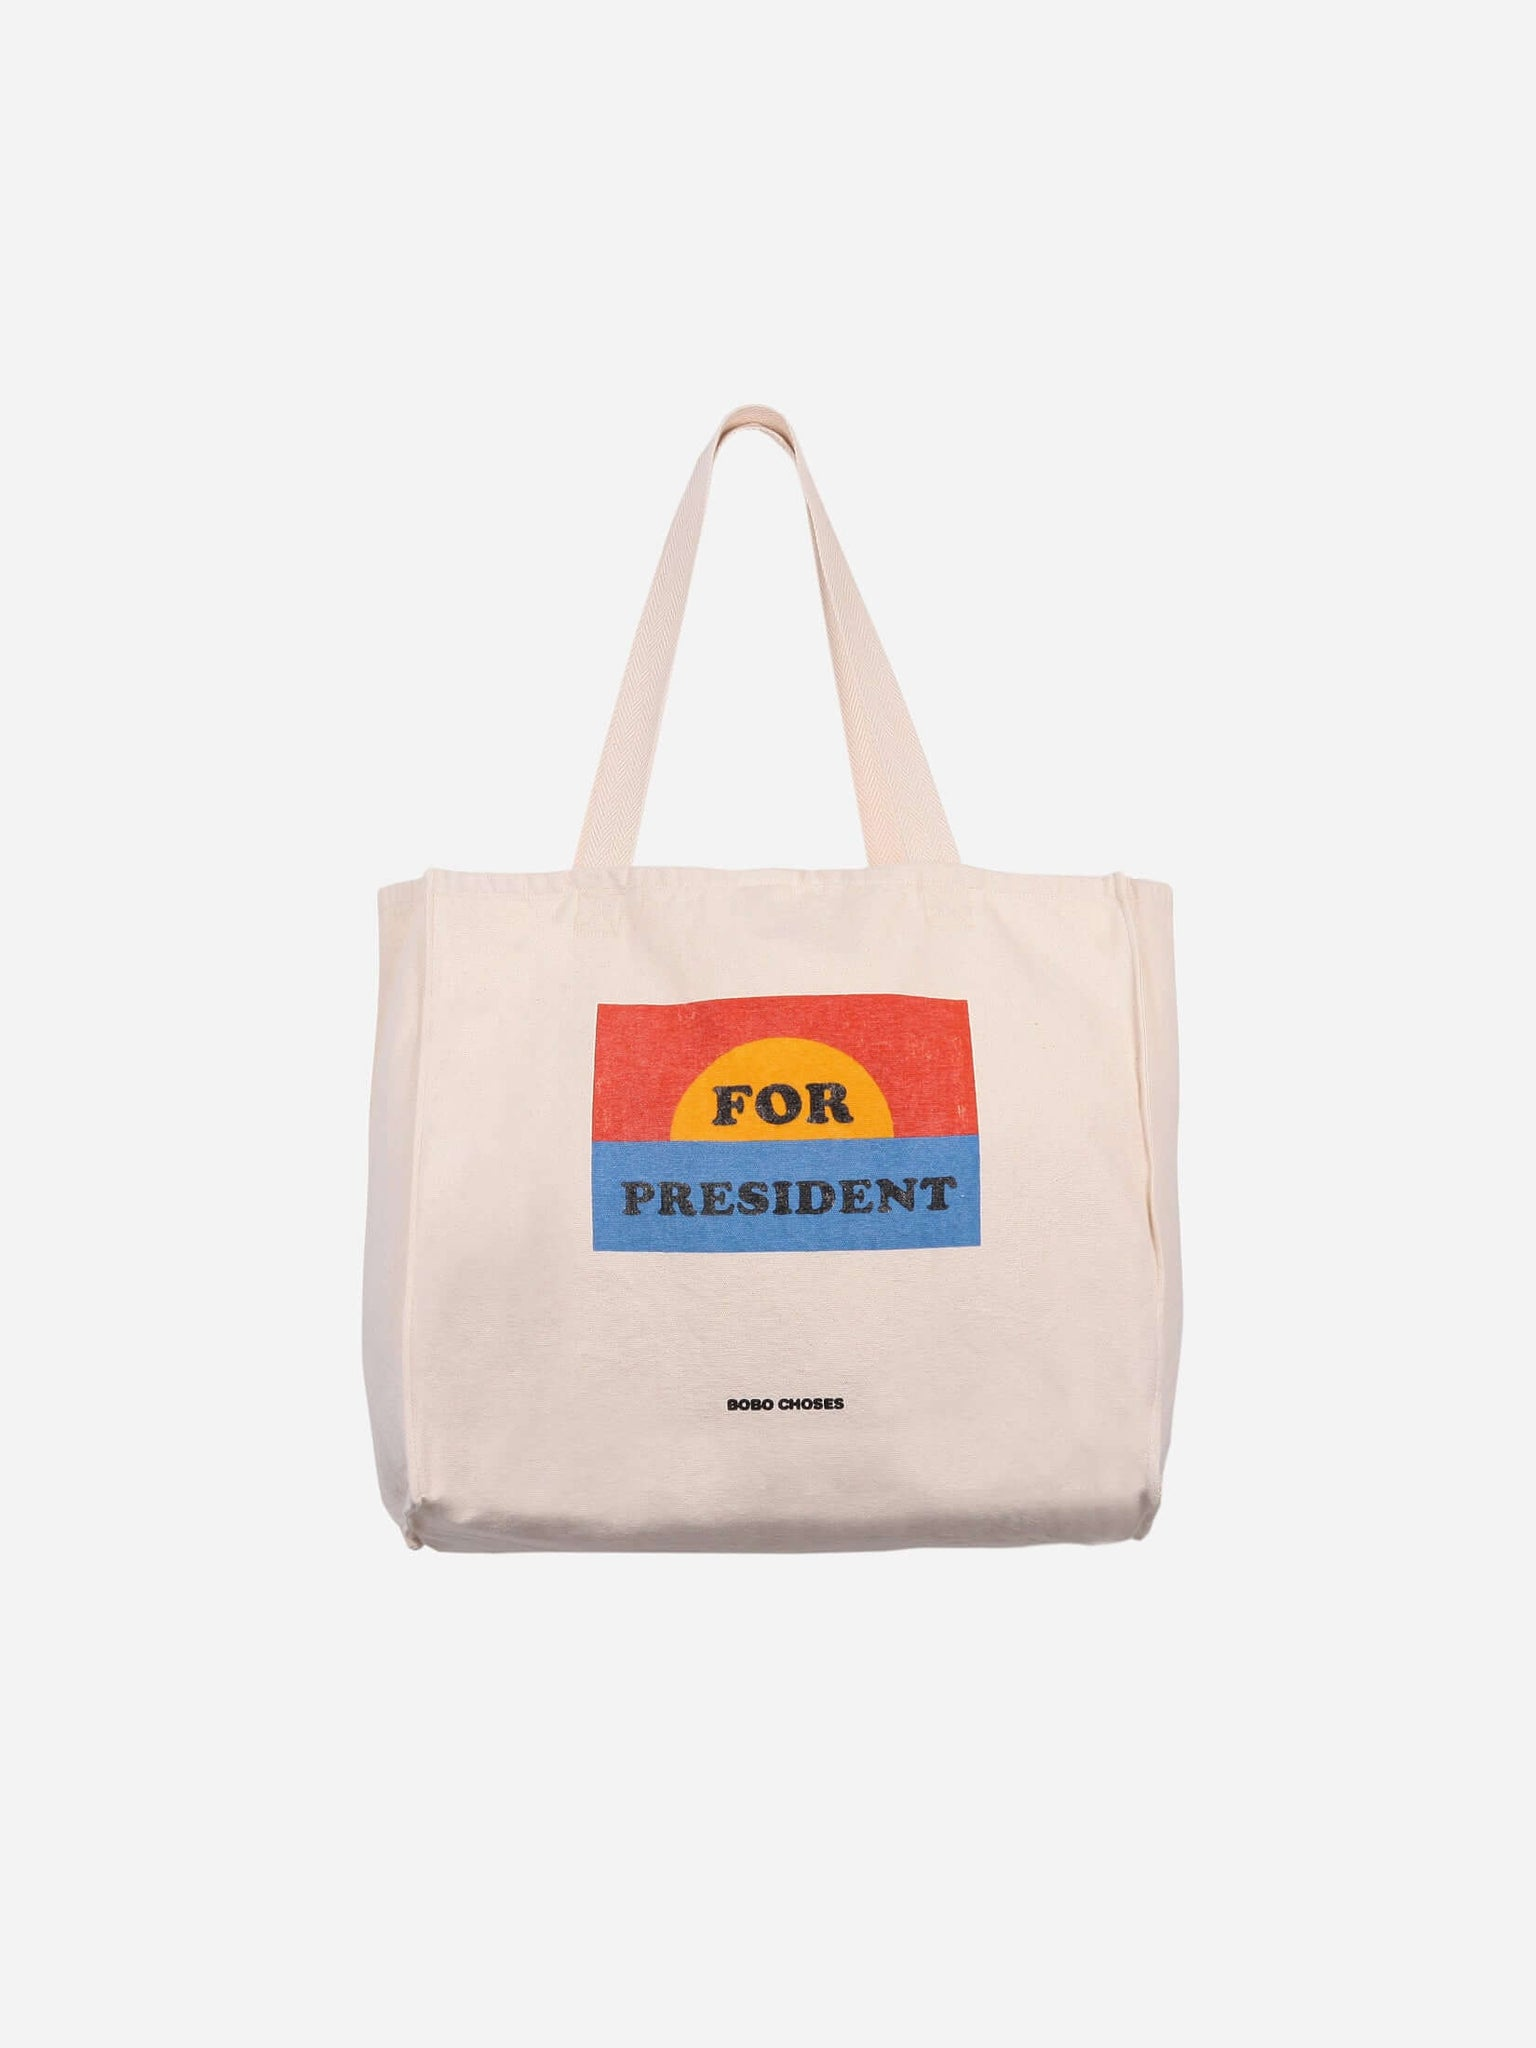 Bobo Choses For President Tote Bag Turtle Dove